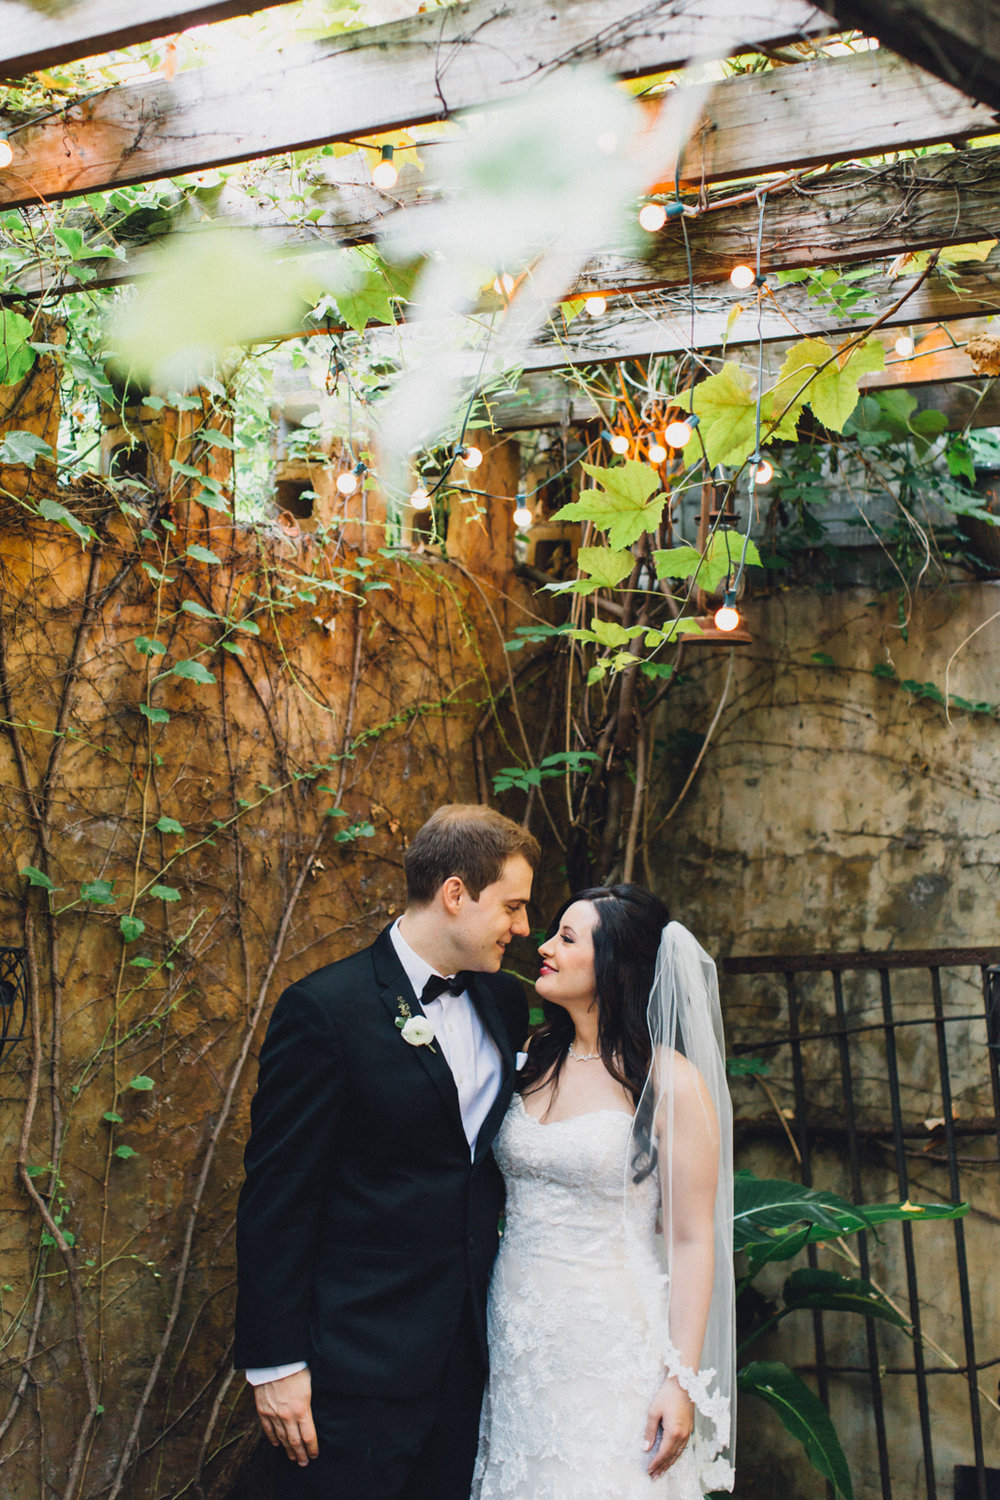 NYC Wedding Photography Lofts at Prince Brooklyn NYC Photographer Boris Zaretsky _B2C0408.jpg